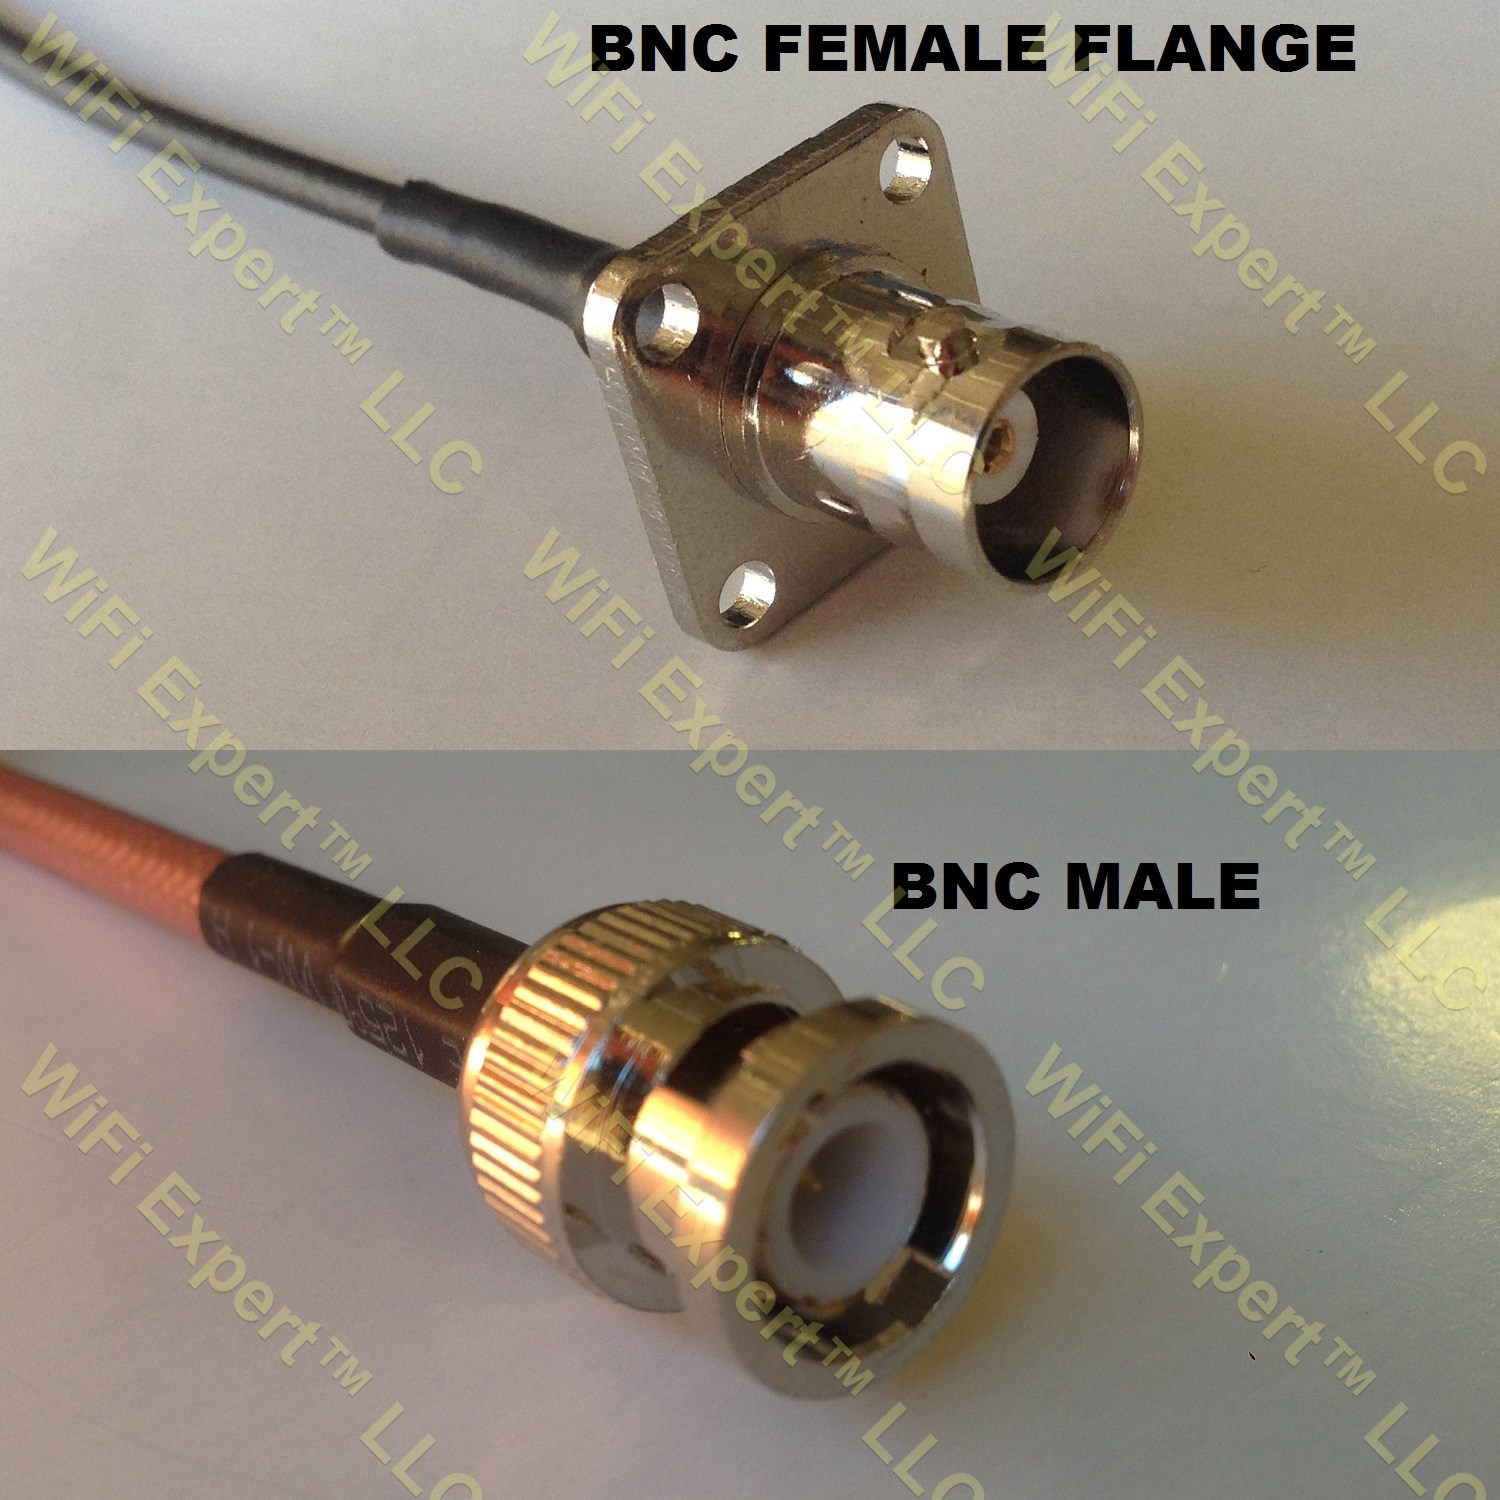 USA-CA RG316 BNC Flange Female to TS9 ANGLE MALE Coaxial RF Pigtail Cable